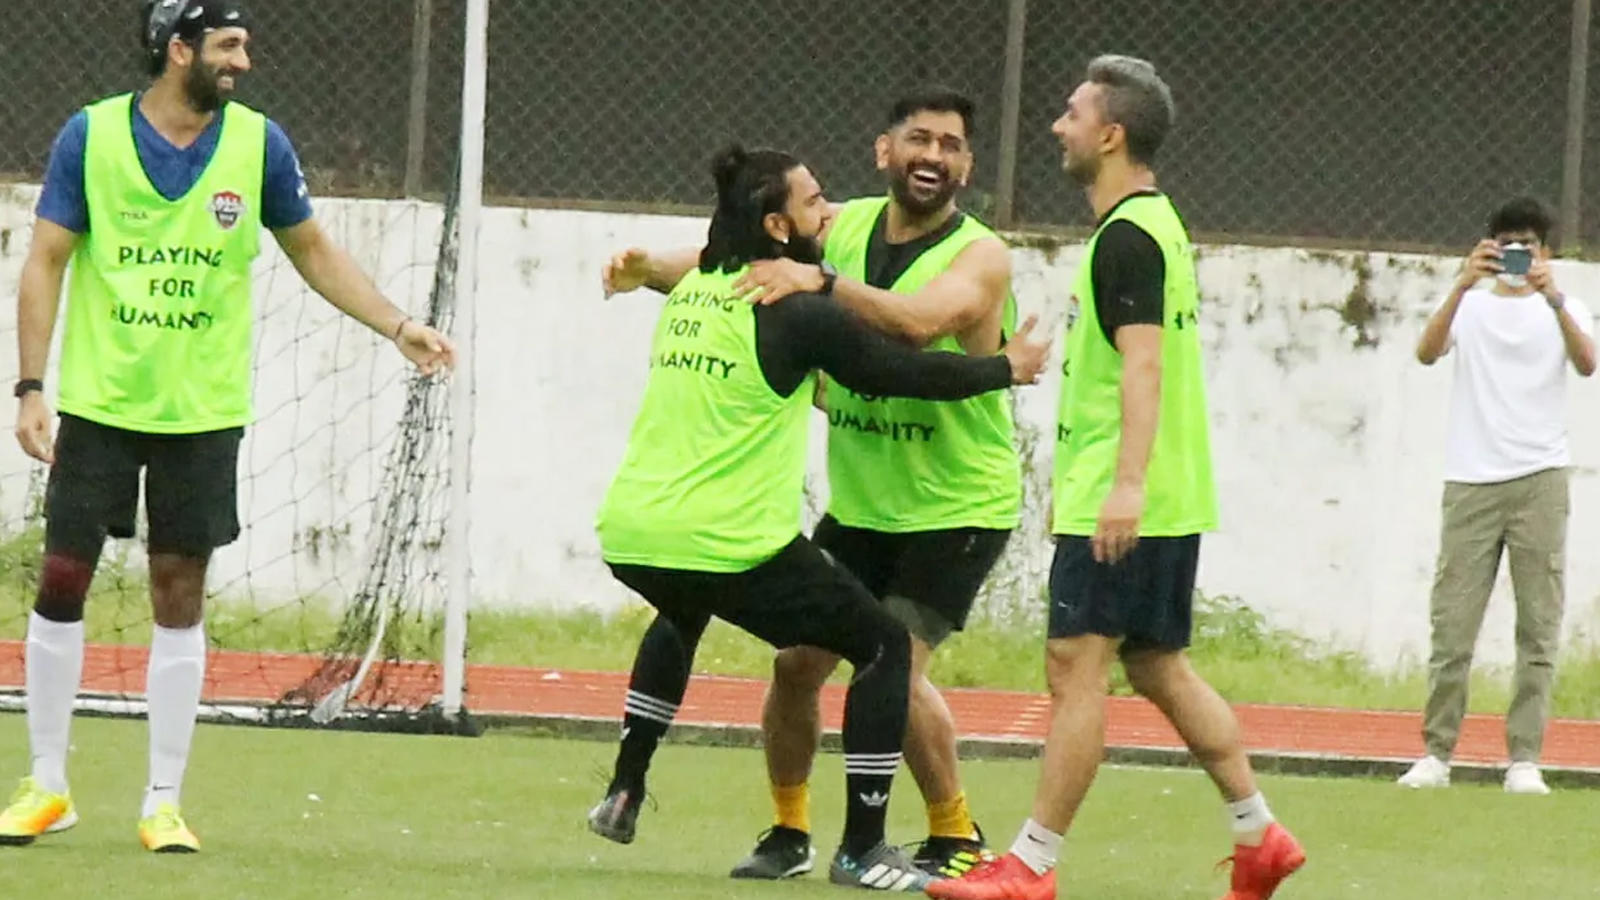 ranveer-singh-ms-dhoni-share-light-moment-during-football-match